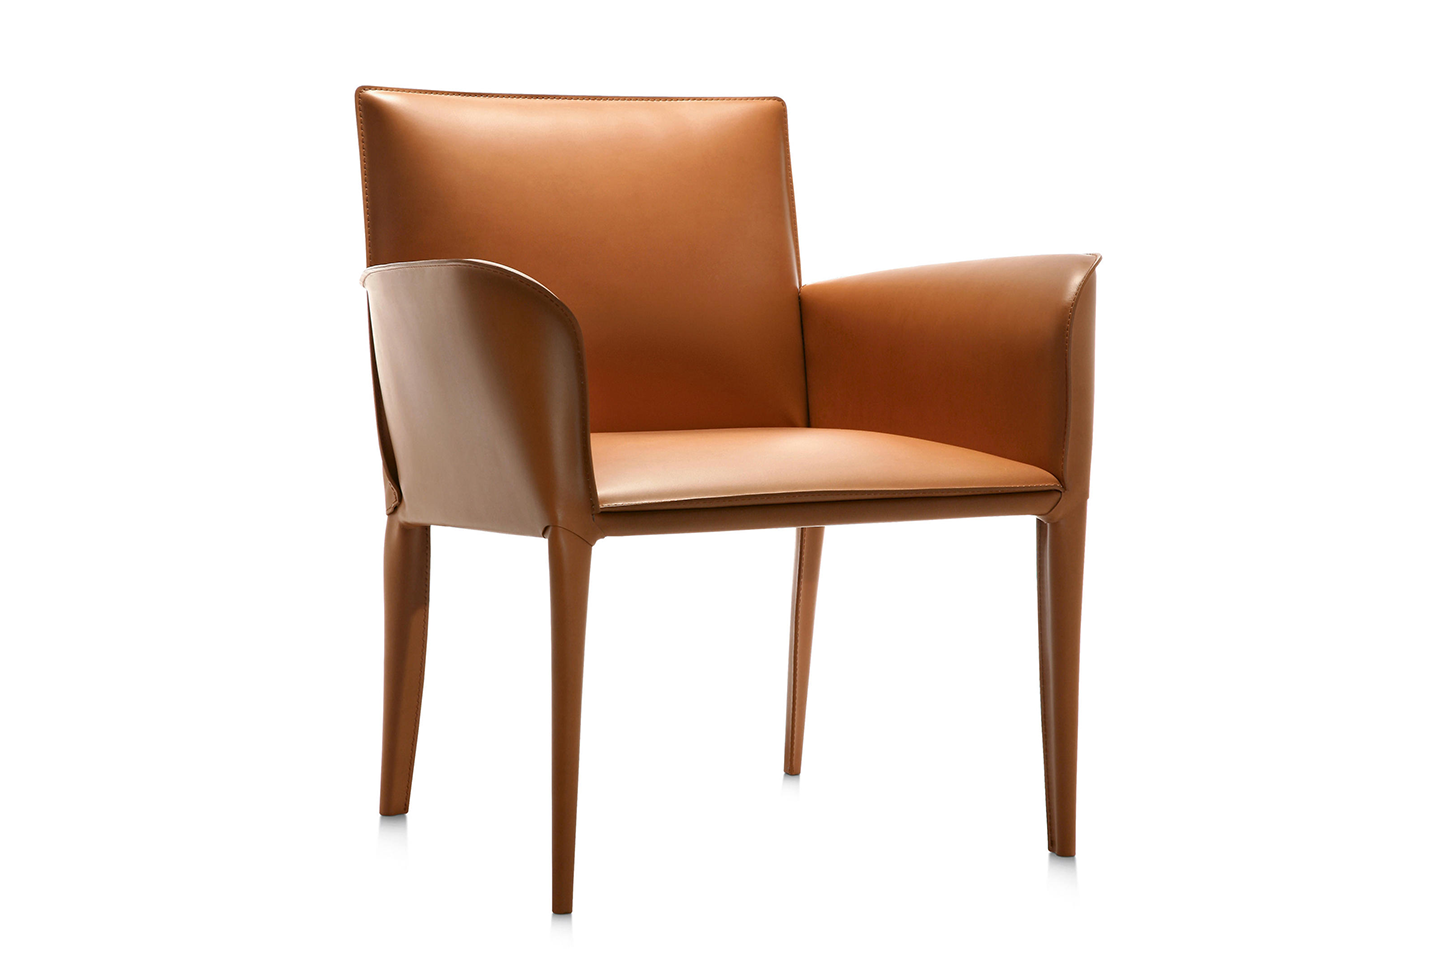 Mobili Italia_Frag Latina L lounge chair